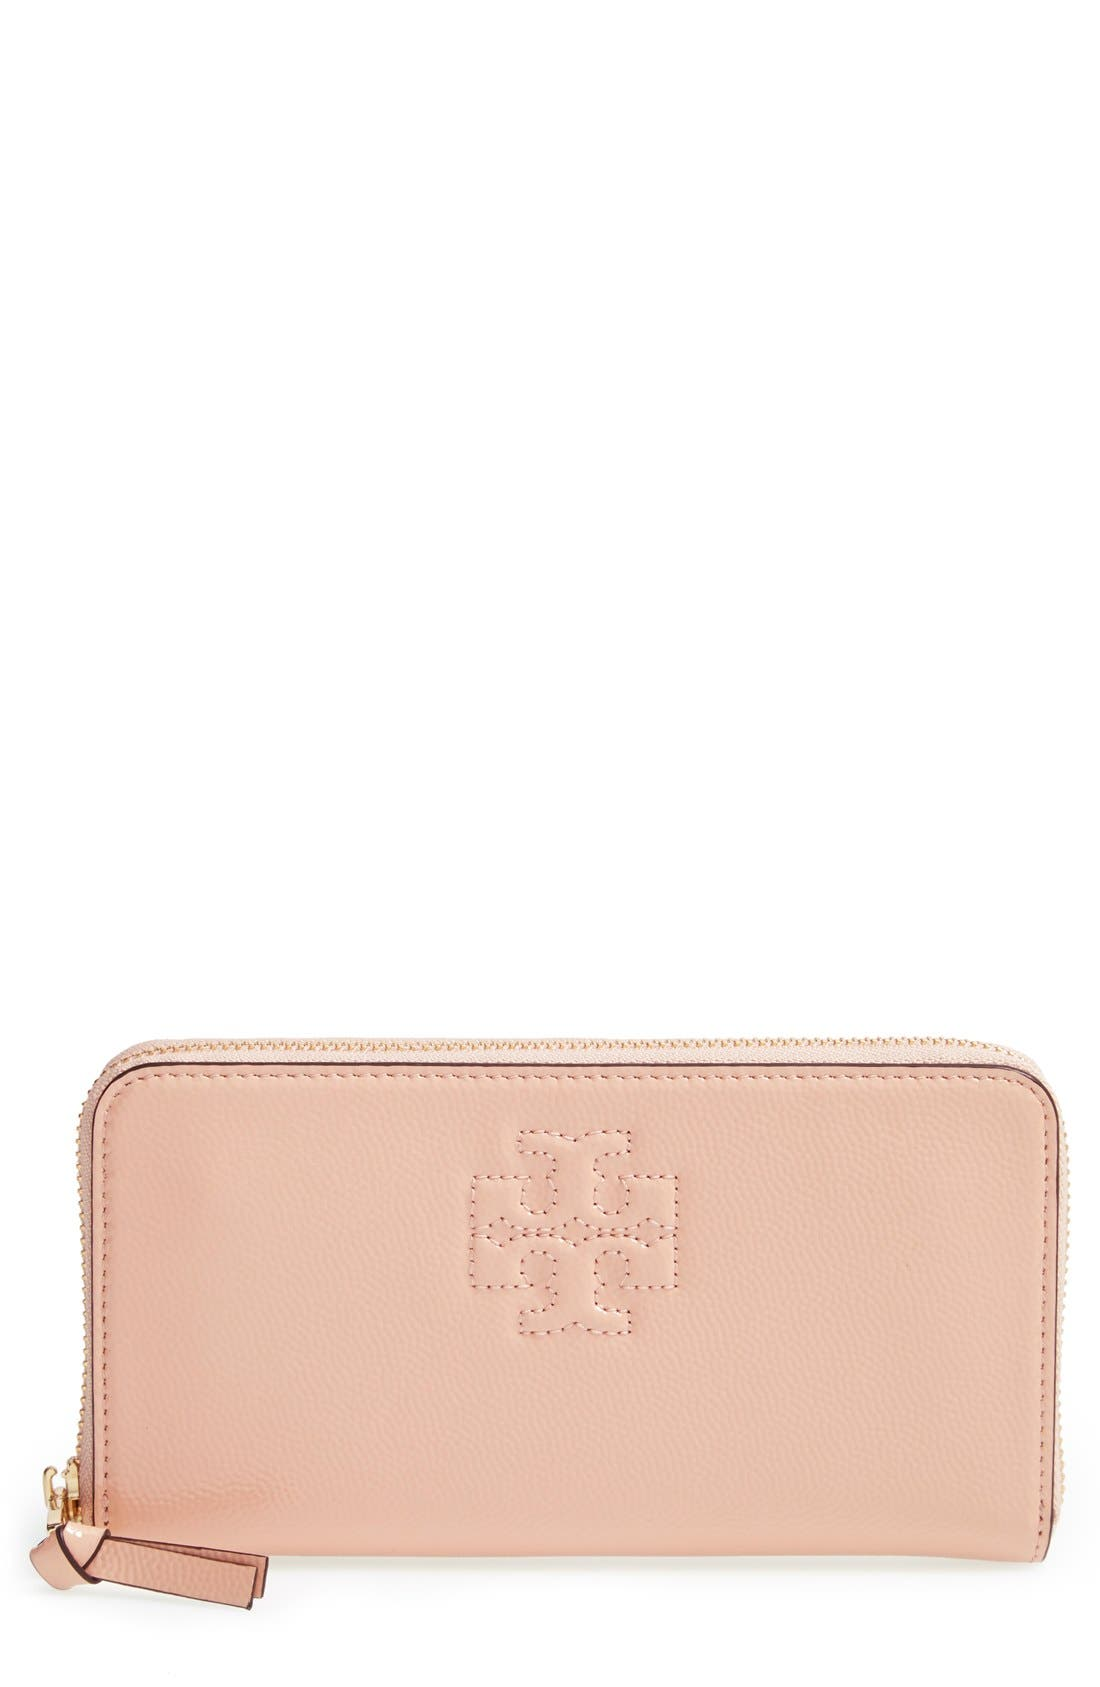 Alternate Image 1 Selected - Tory Burch 'Thea' Leather Zip Around Wallet